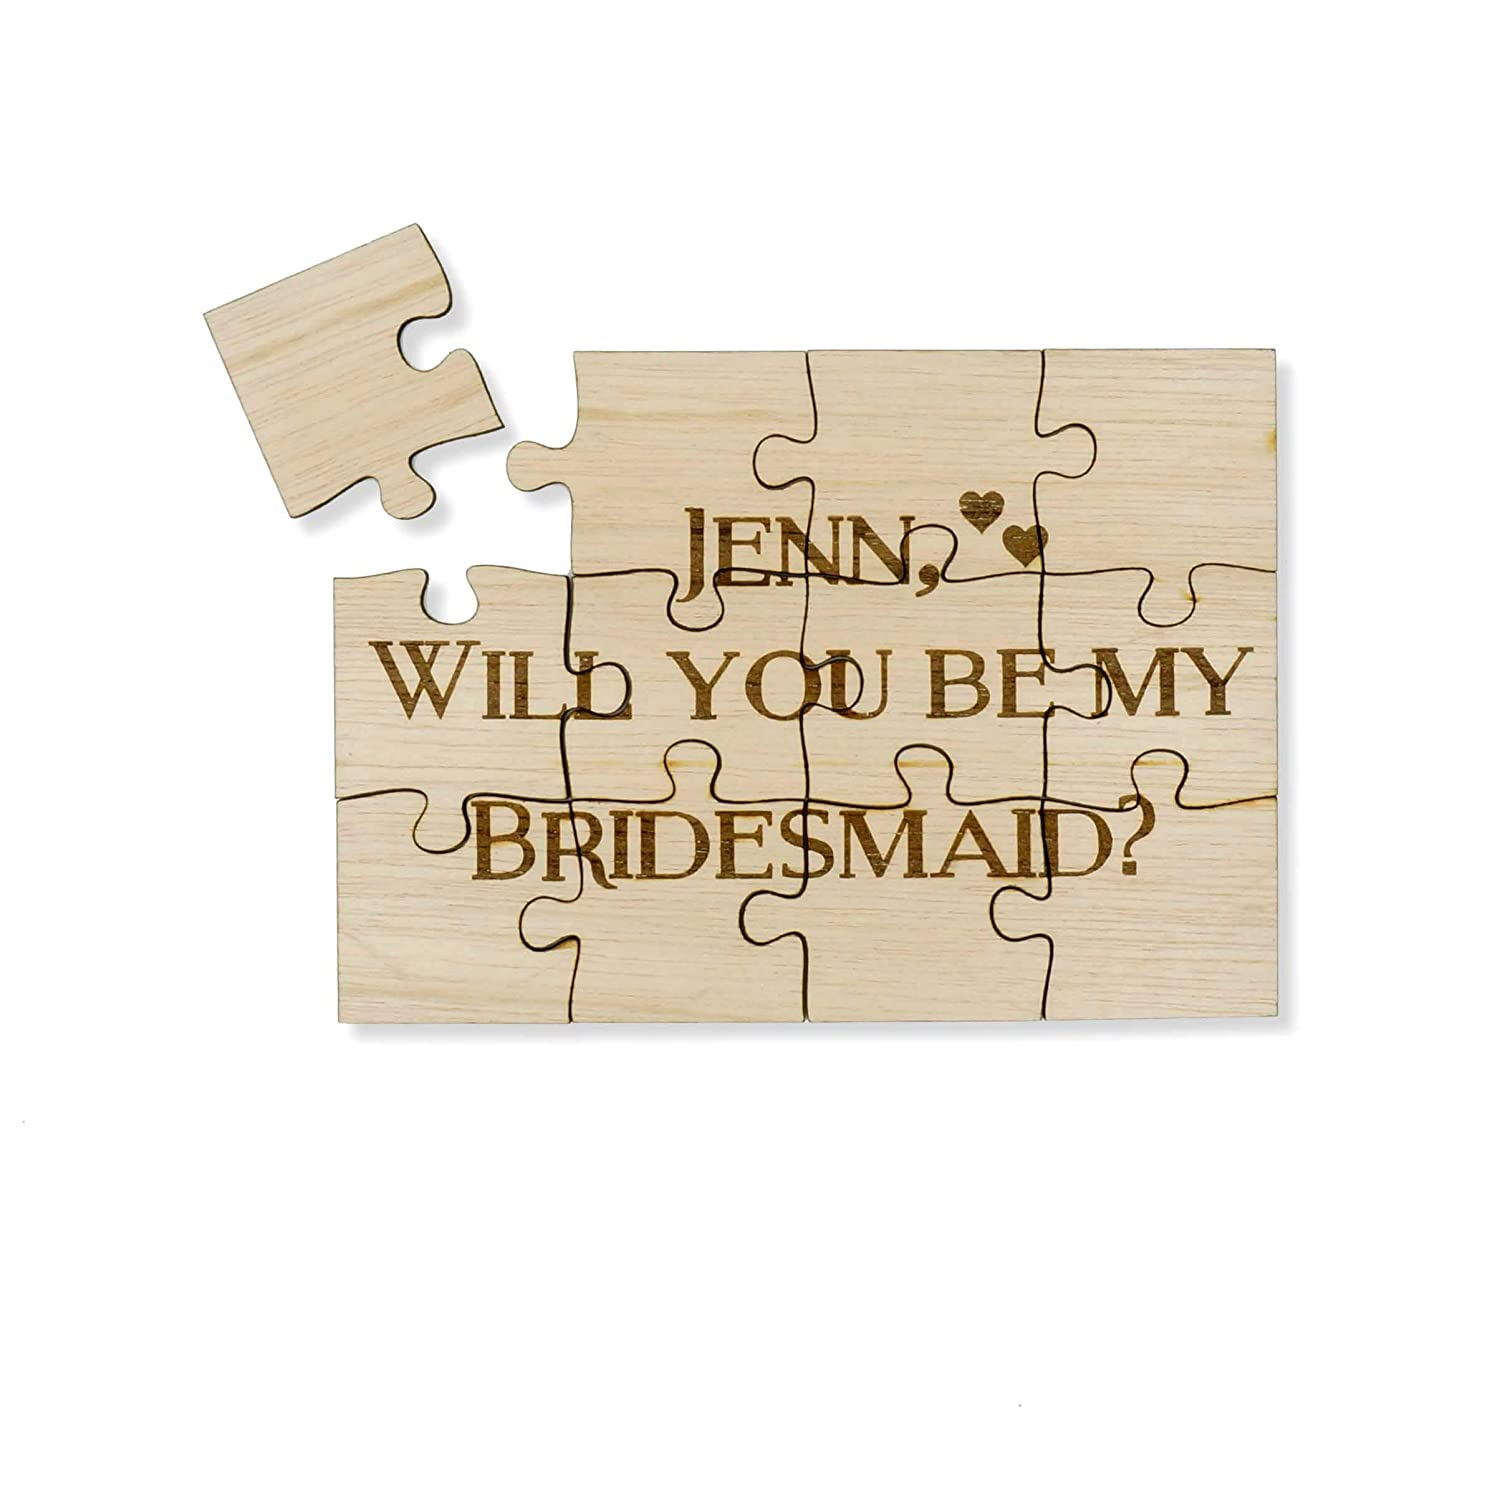 Unique Custom Personalized Wood Puzzle Wedding Party Will you be my bridesmaid Maid of Honor Flower Girl 12 Piece Jigsaw Mystery Puzzle 5x7 Sign